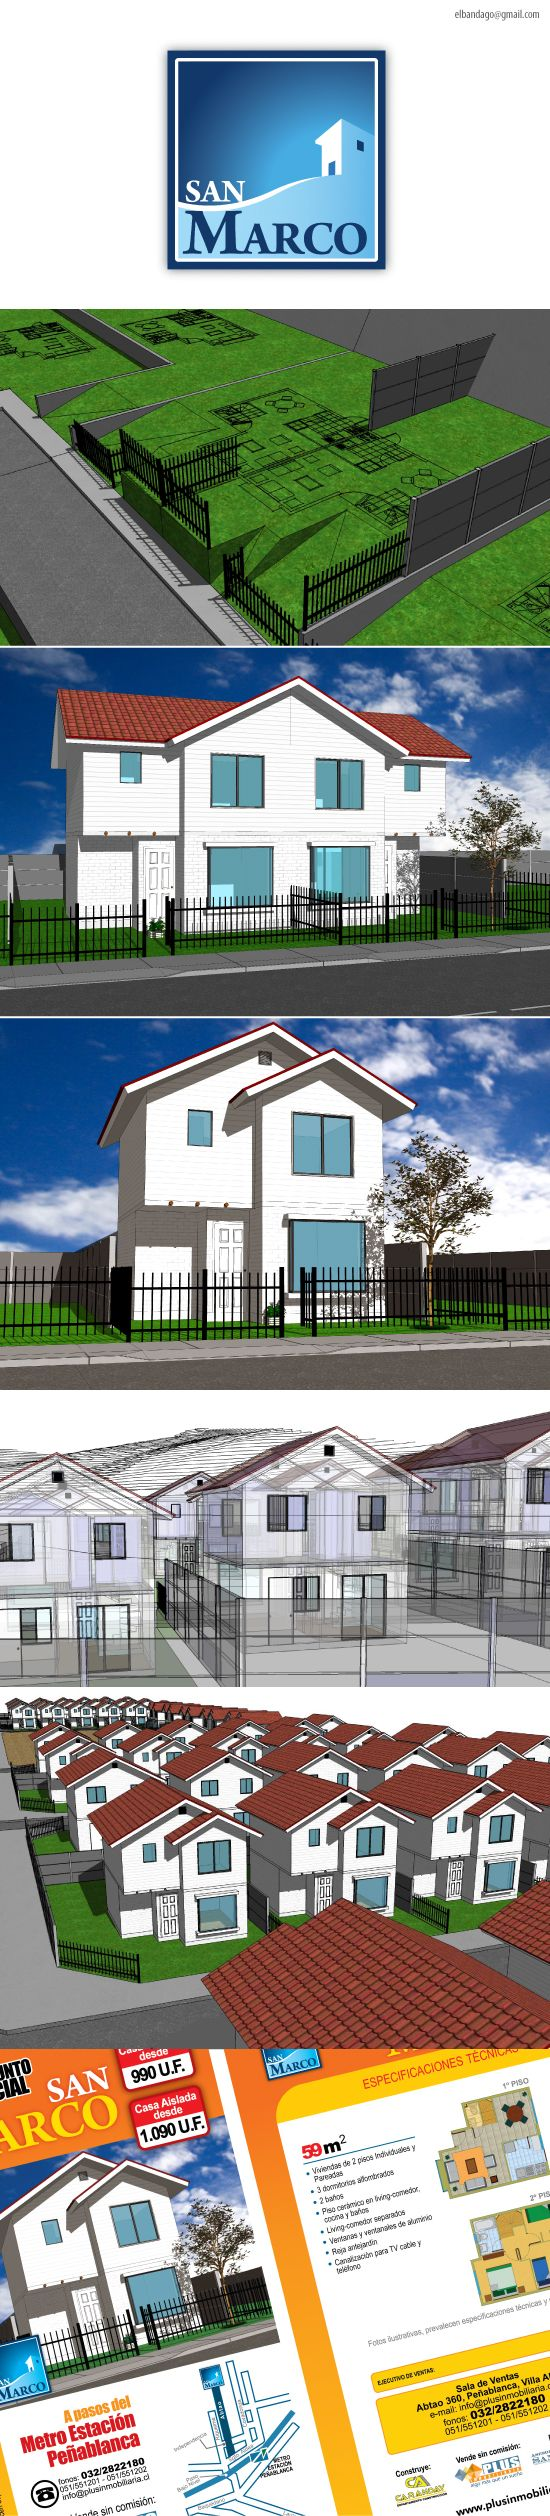 2008 / San Marco Project on Behance #3D #design #sketchup